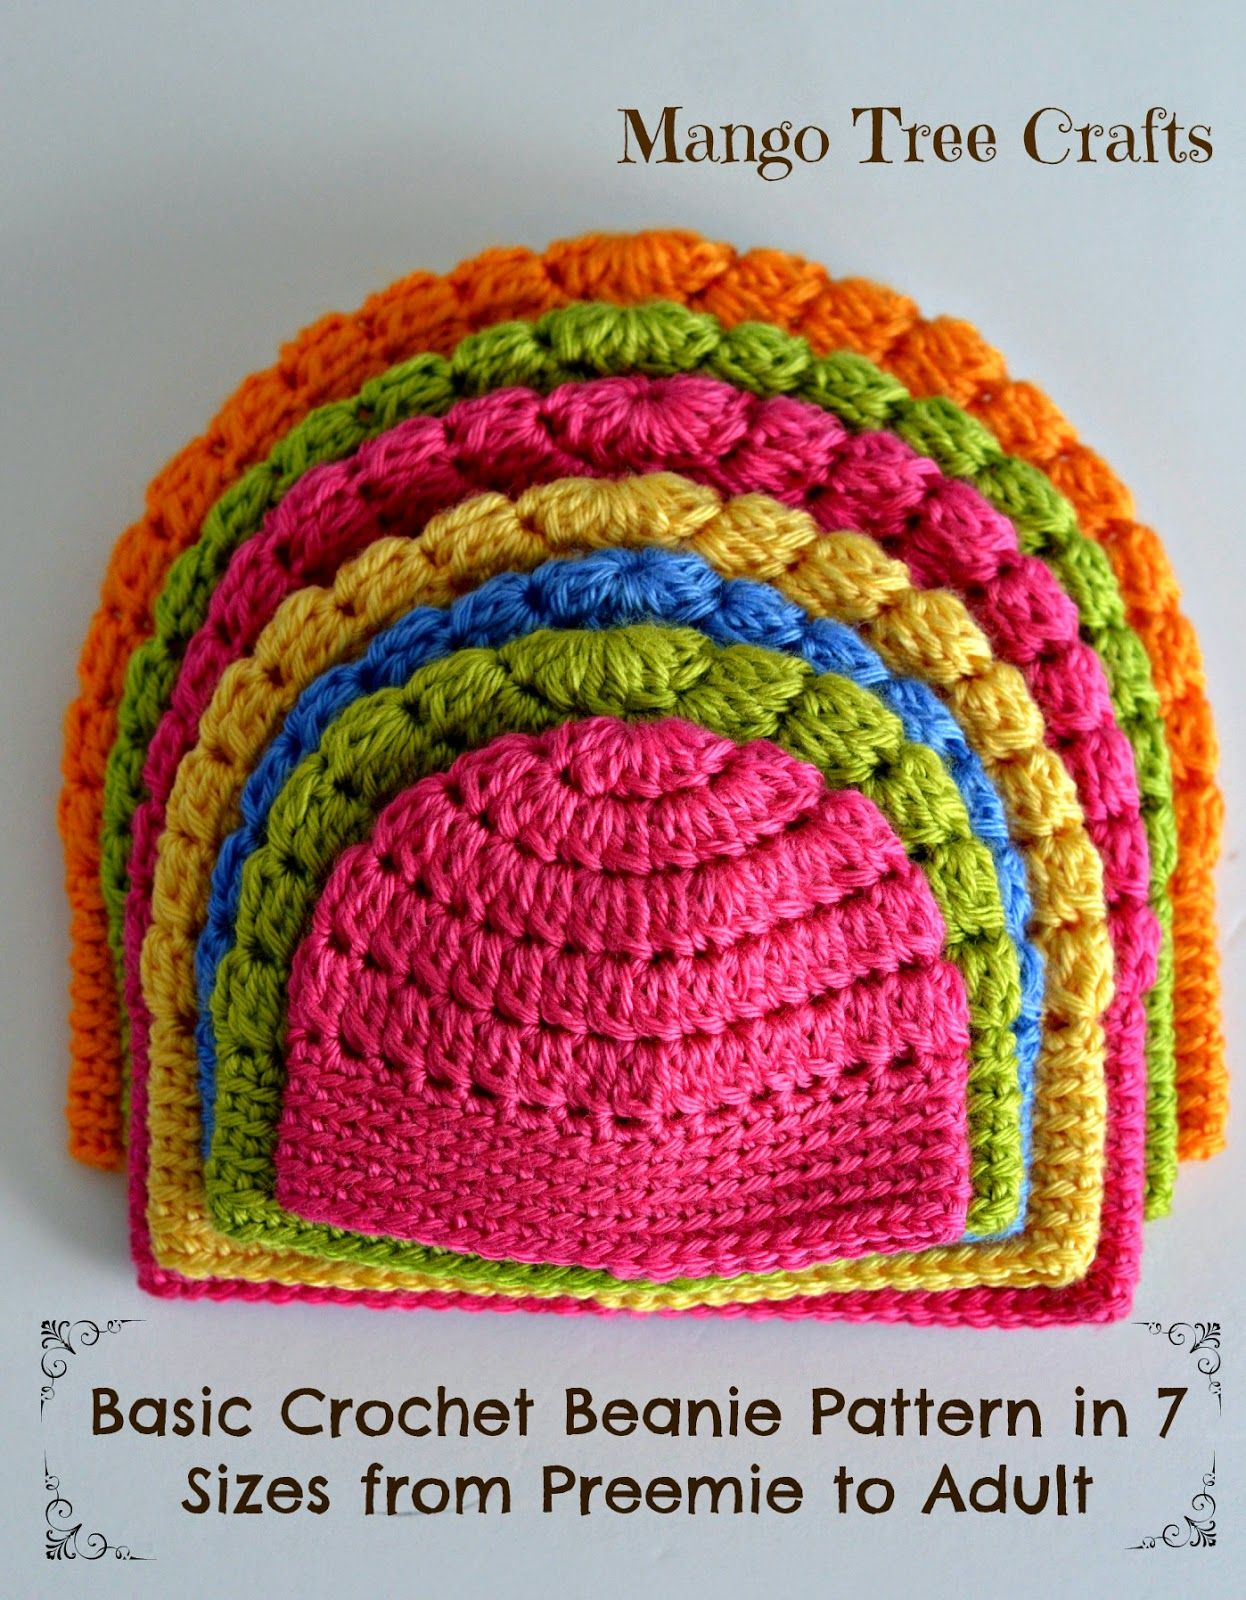 Free Pattern] This Basic Beanie Pattern Is Simply Awesome | crochet ...